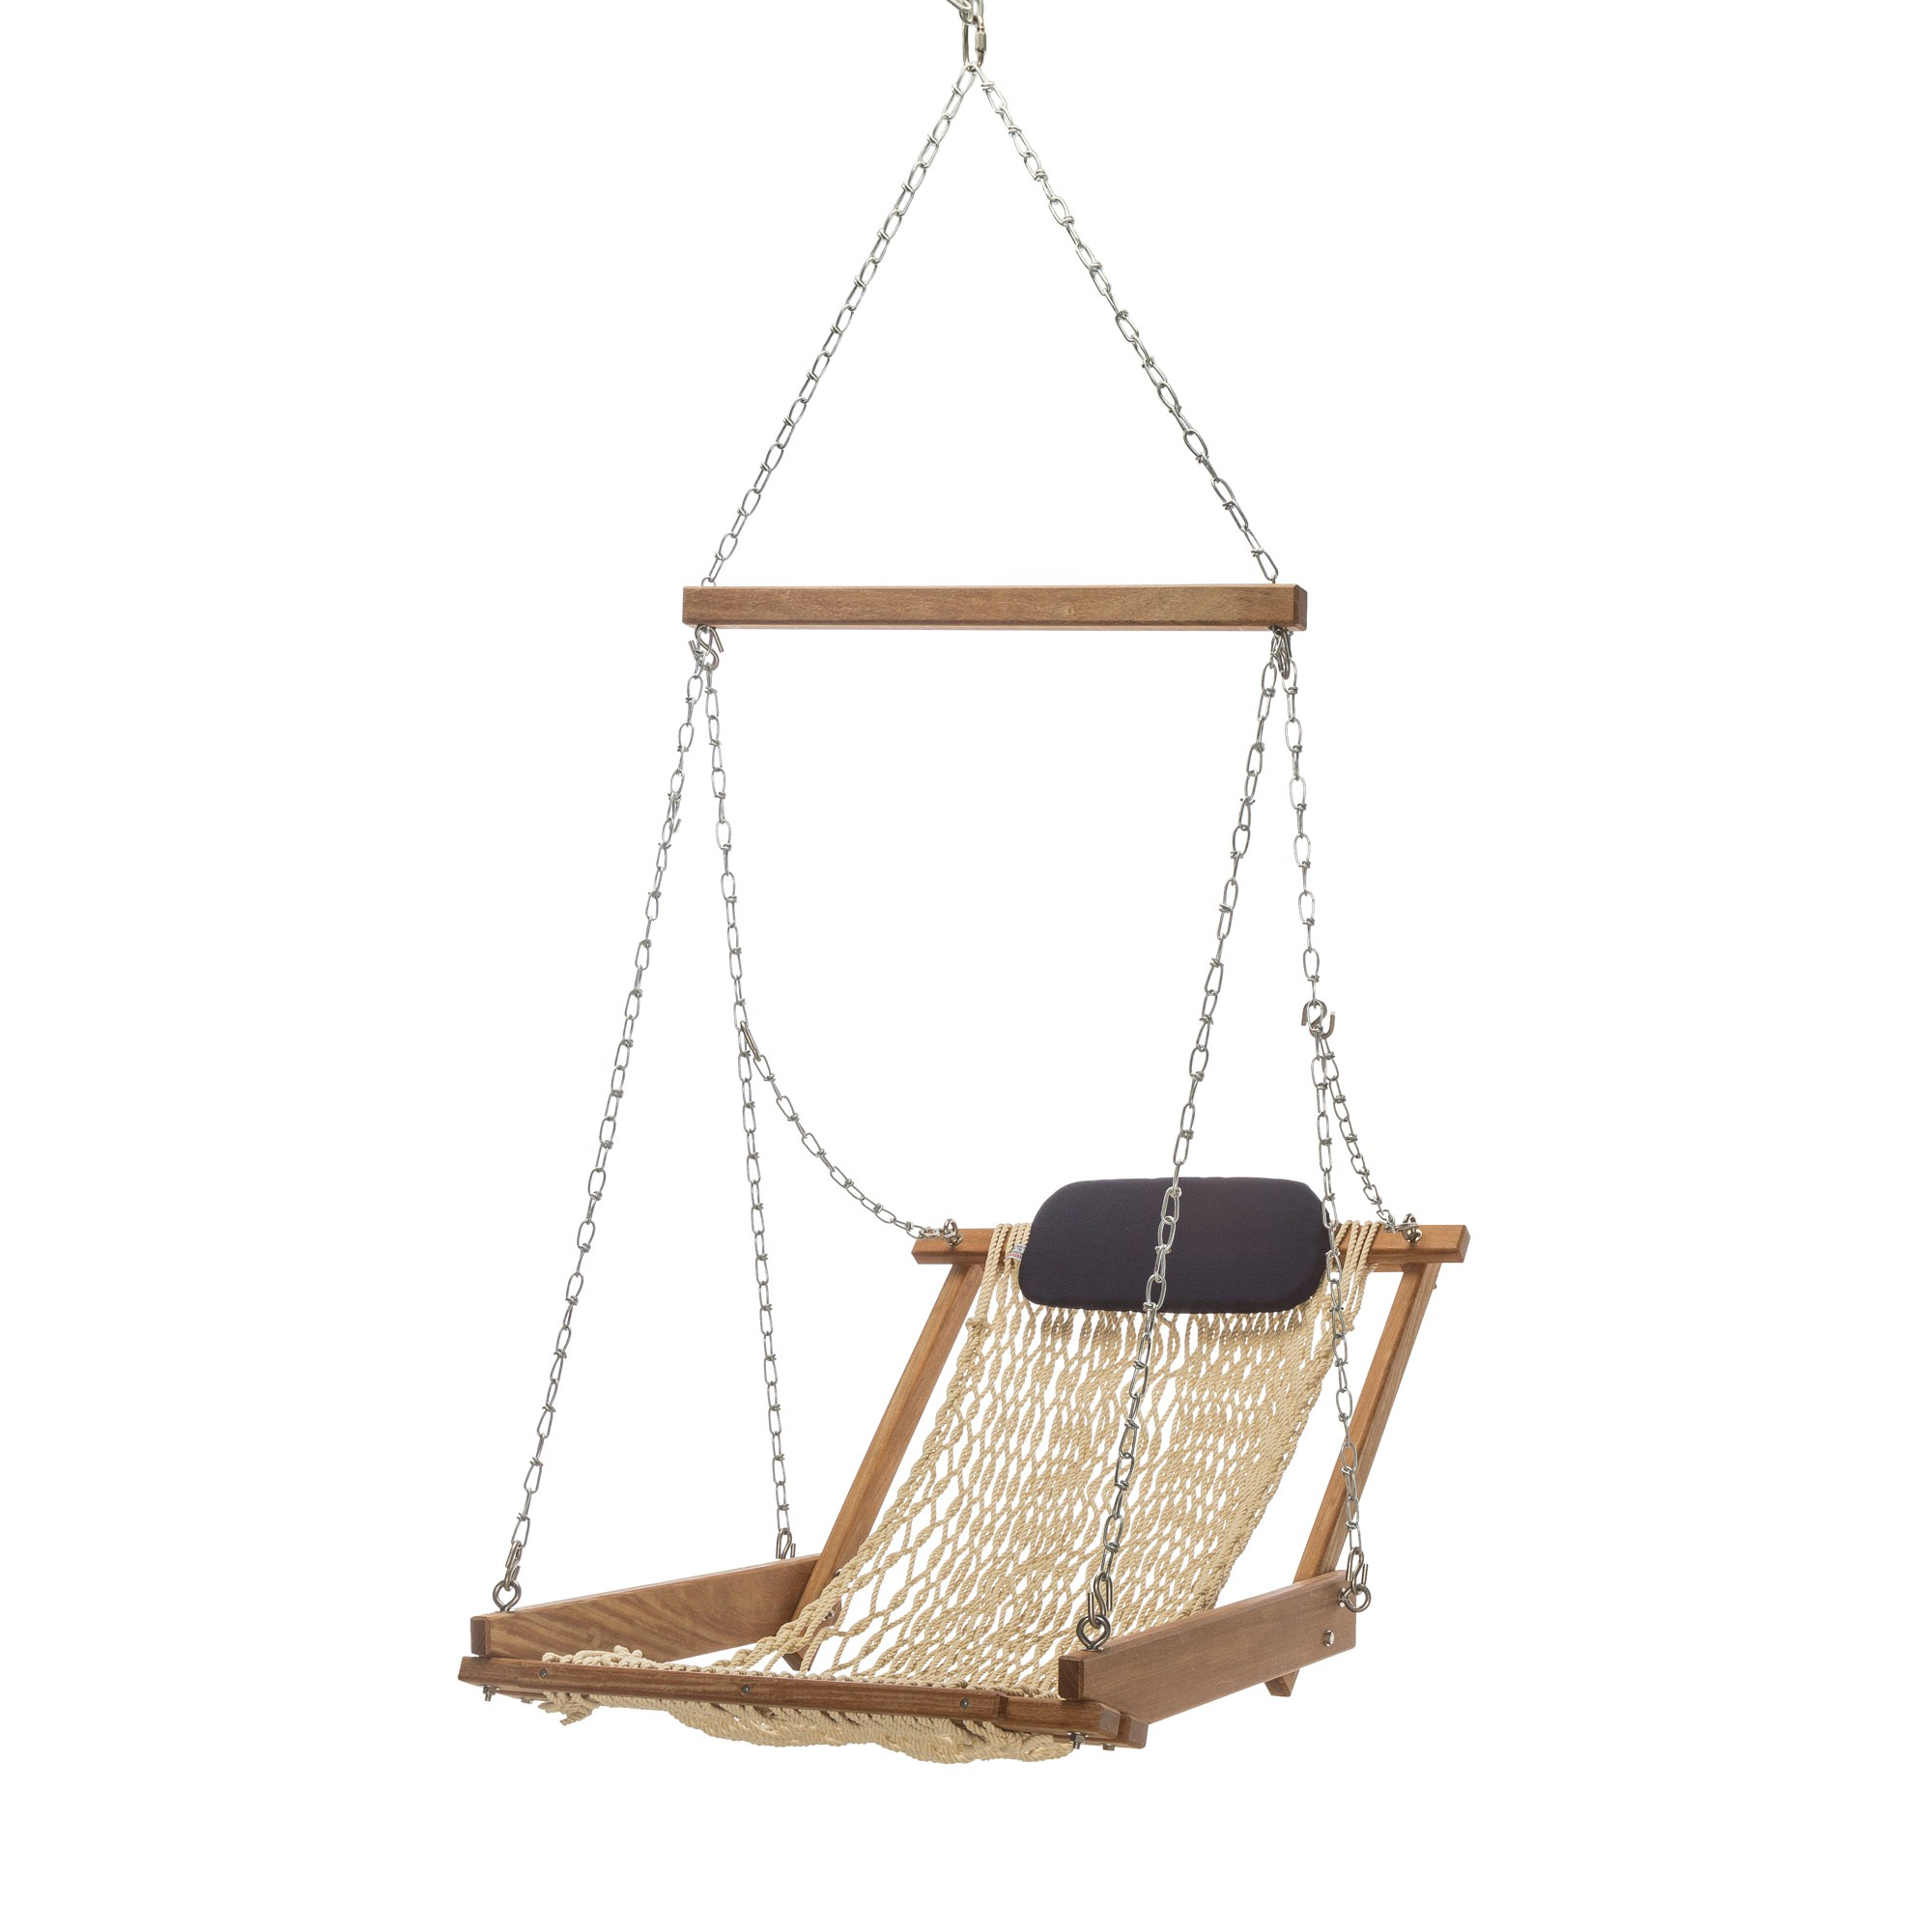 Cumaru Hanging Hammock Chair  Nags Head Hammocks